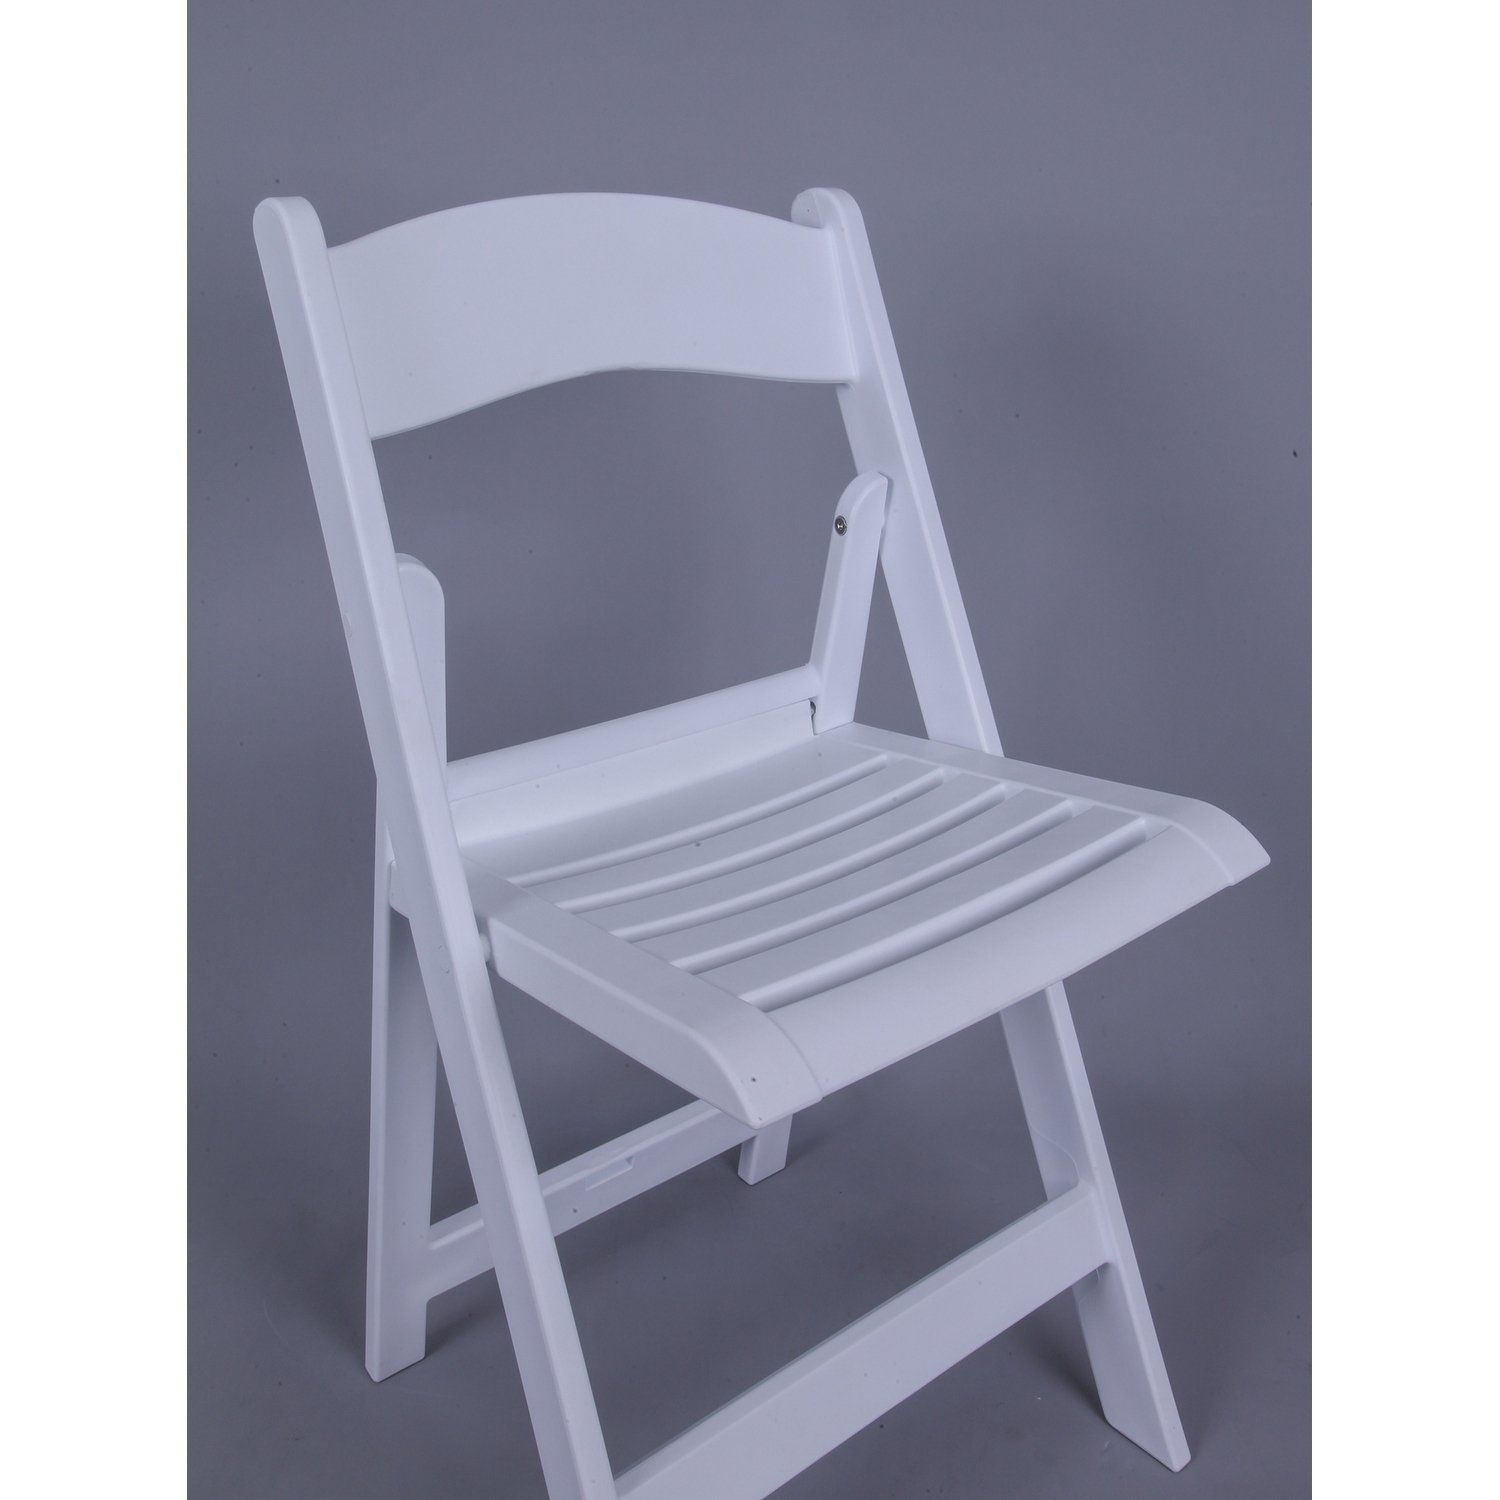 Swell Nexus Resin Folding Chair With Slatted Seat White Armless Ncnpc Chair Design For Home Ncnpcorg